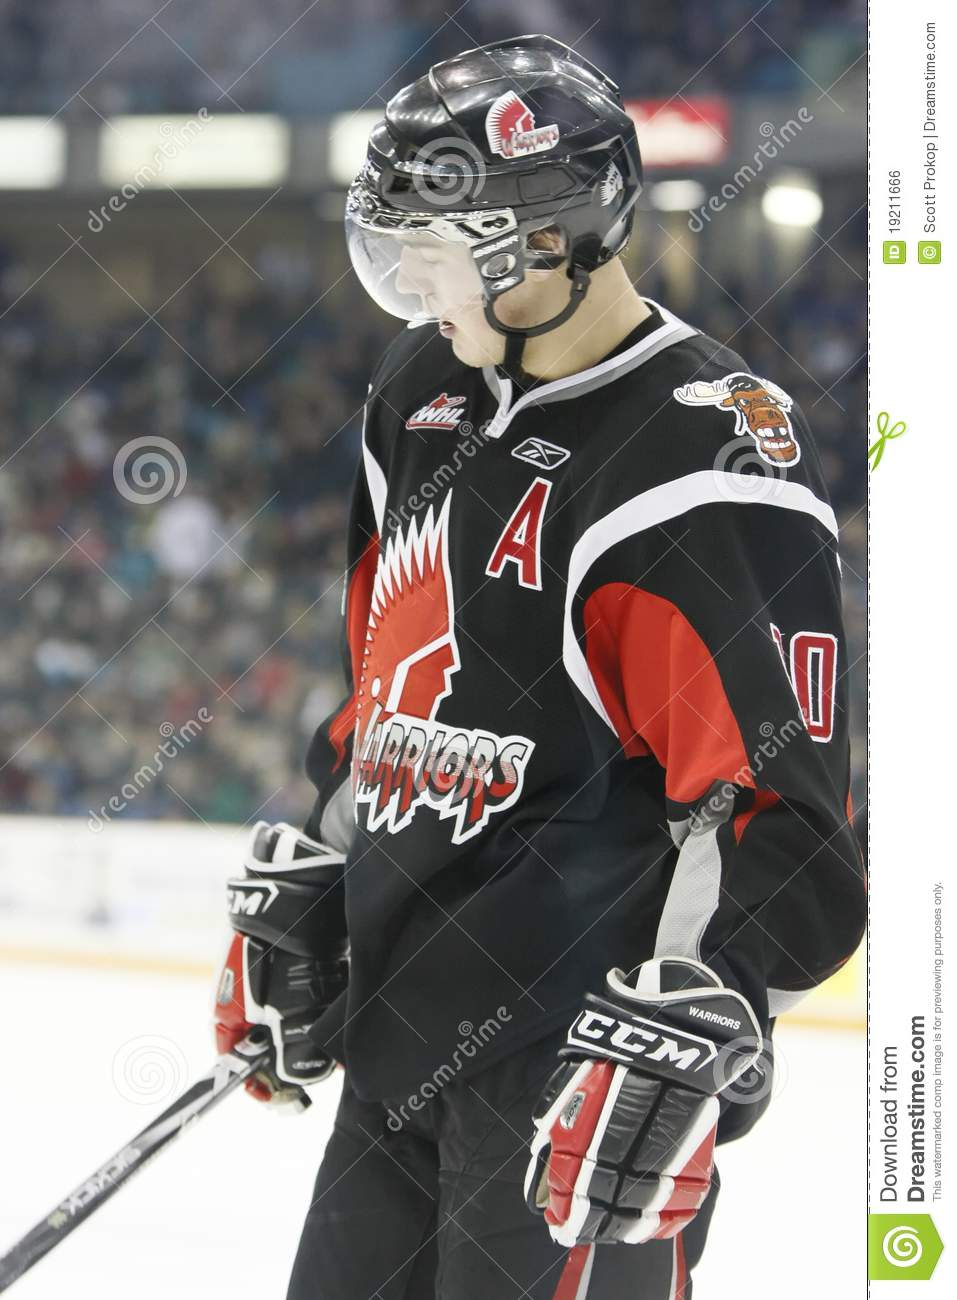 Western Hockey League (WHL) Game Editorial Photo - Image of